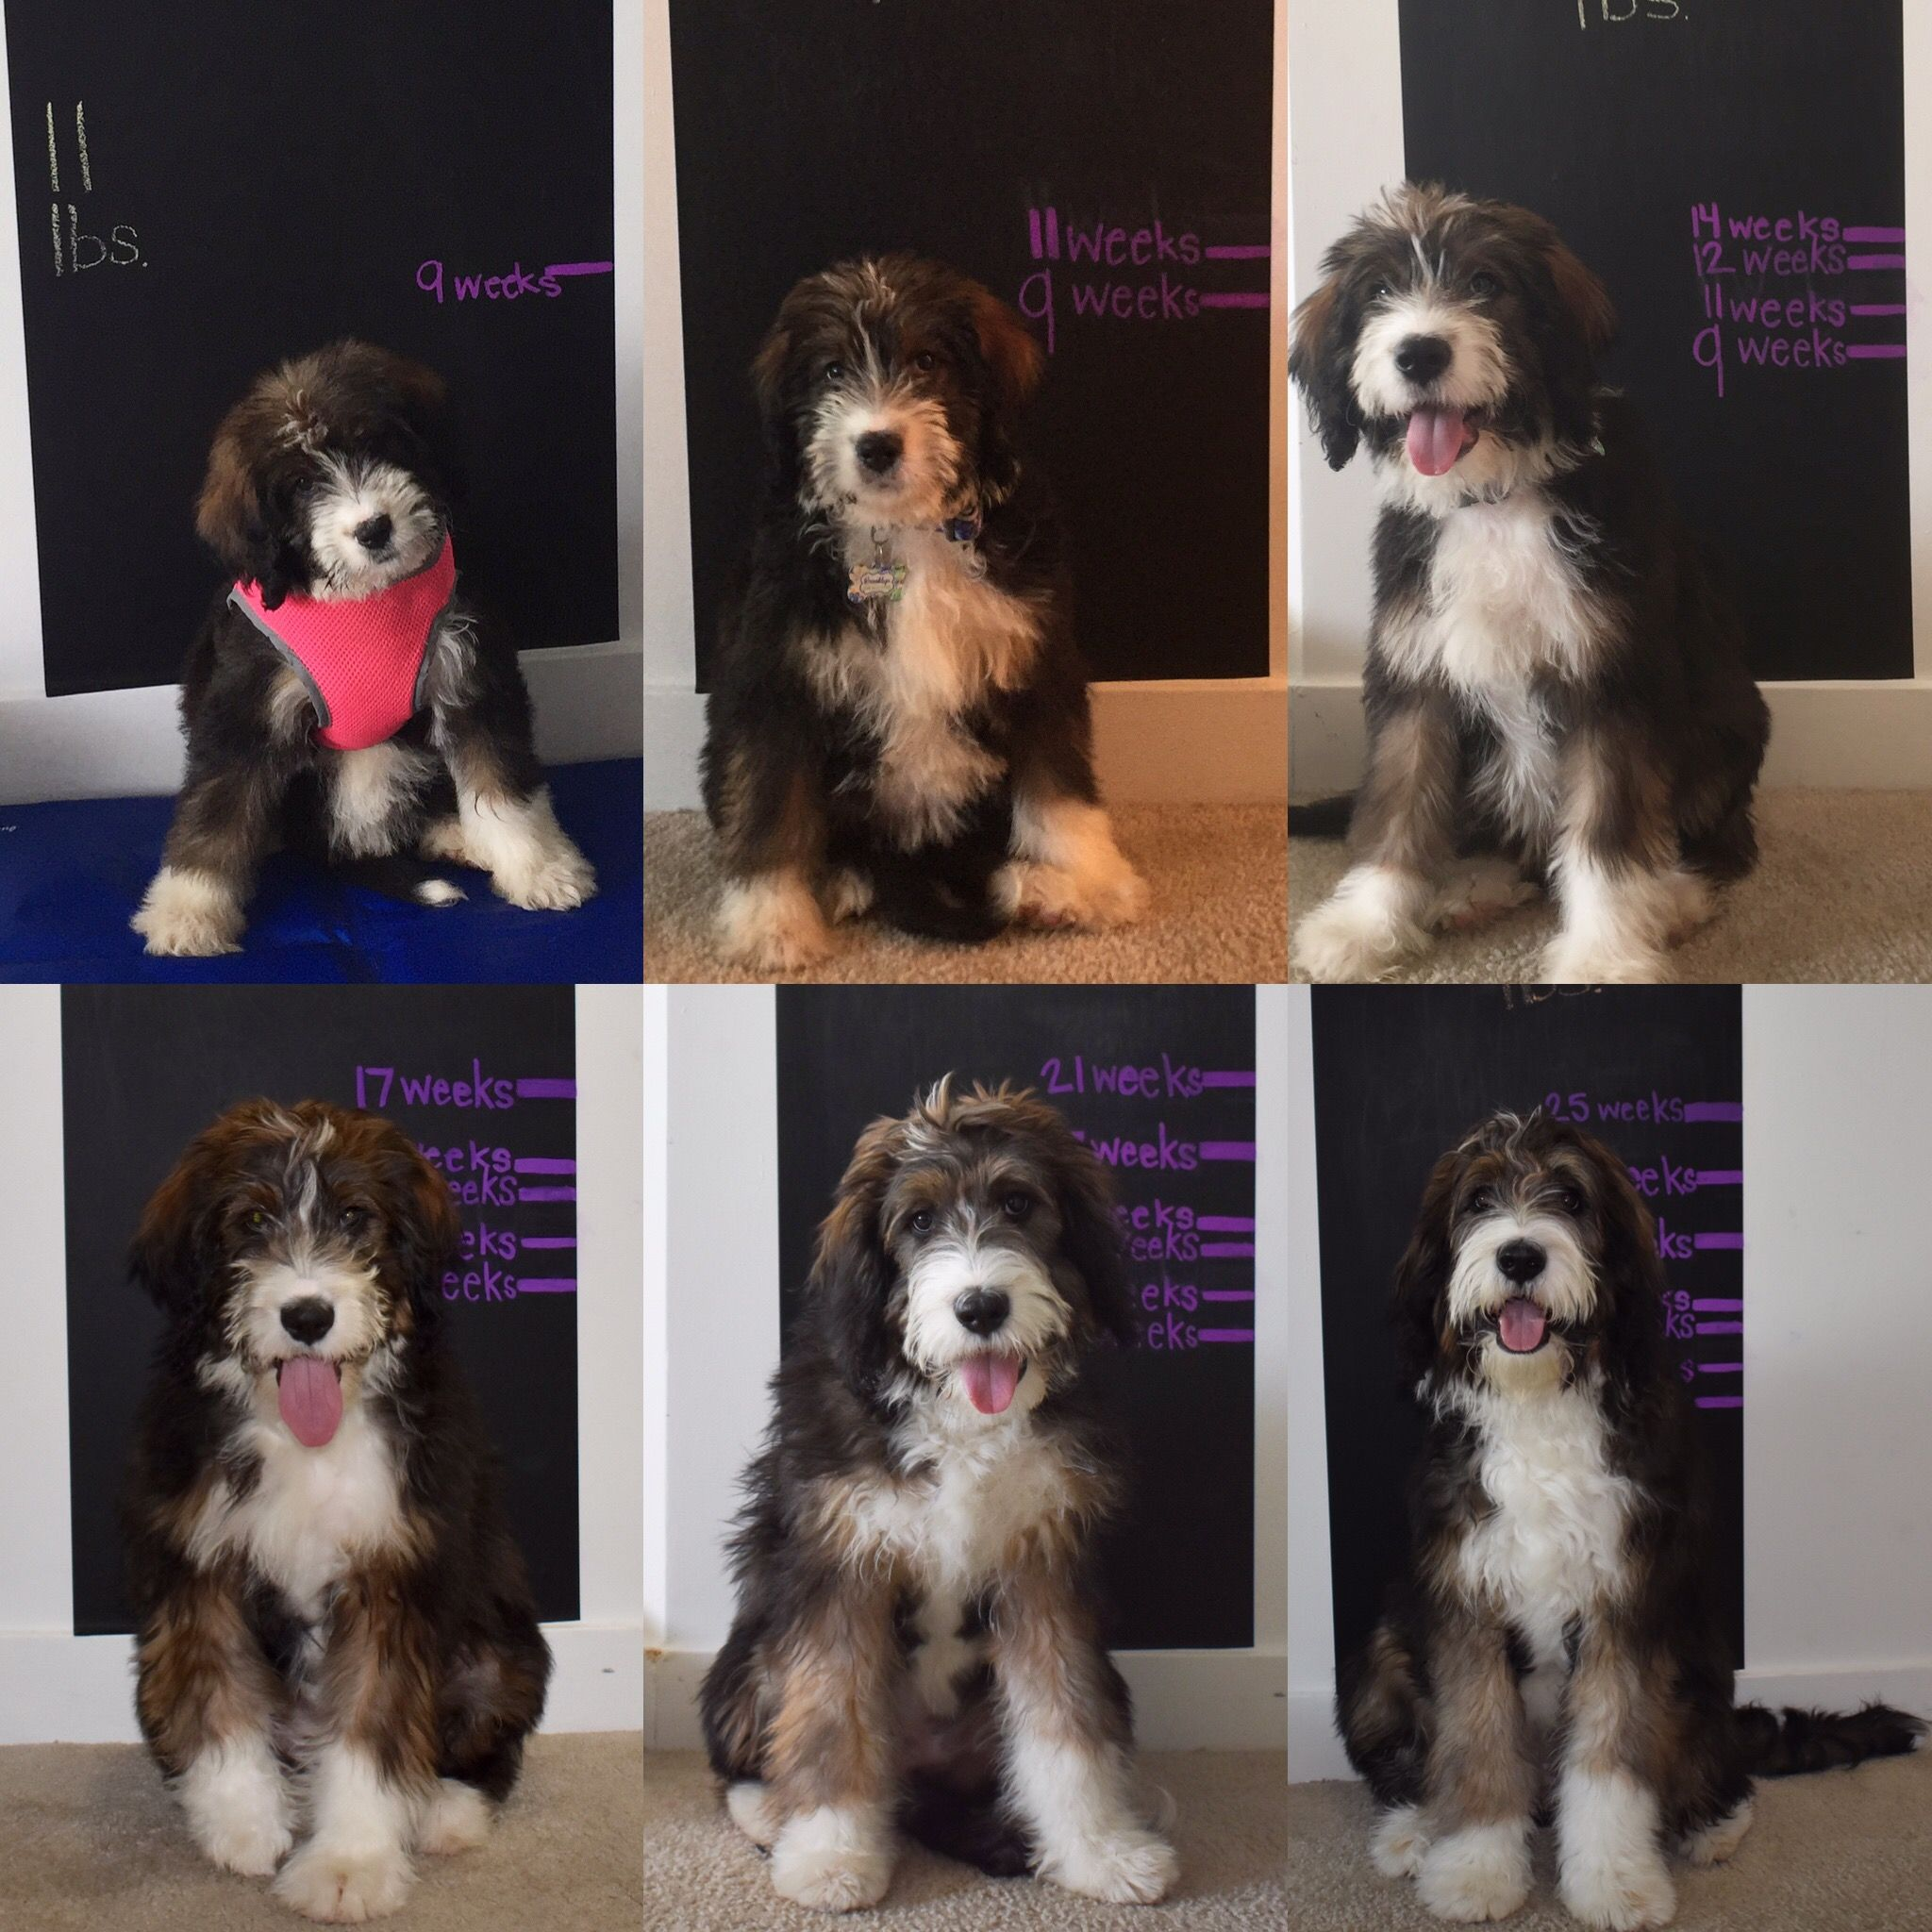 growth chart for puppy puppy growth picture chalkboard doodle